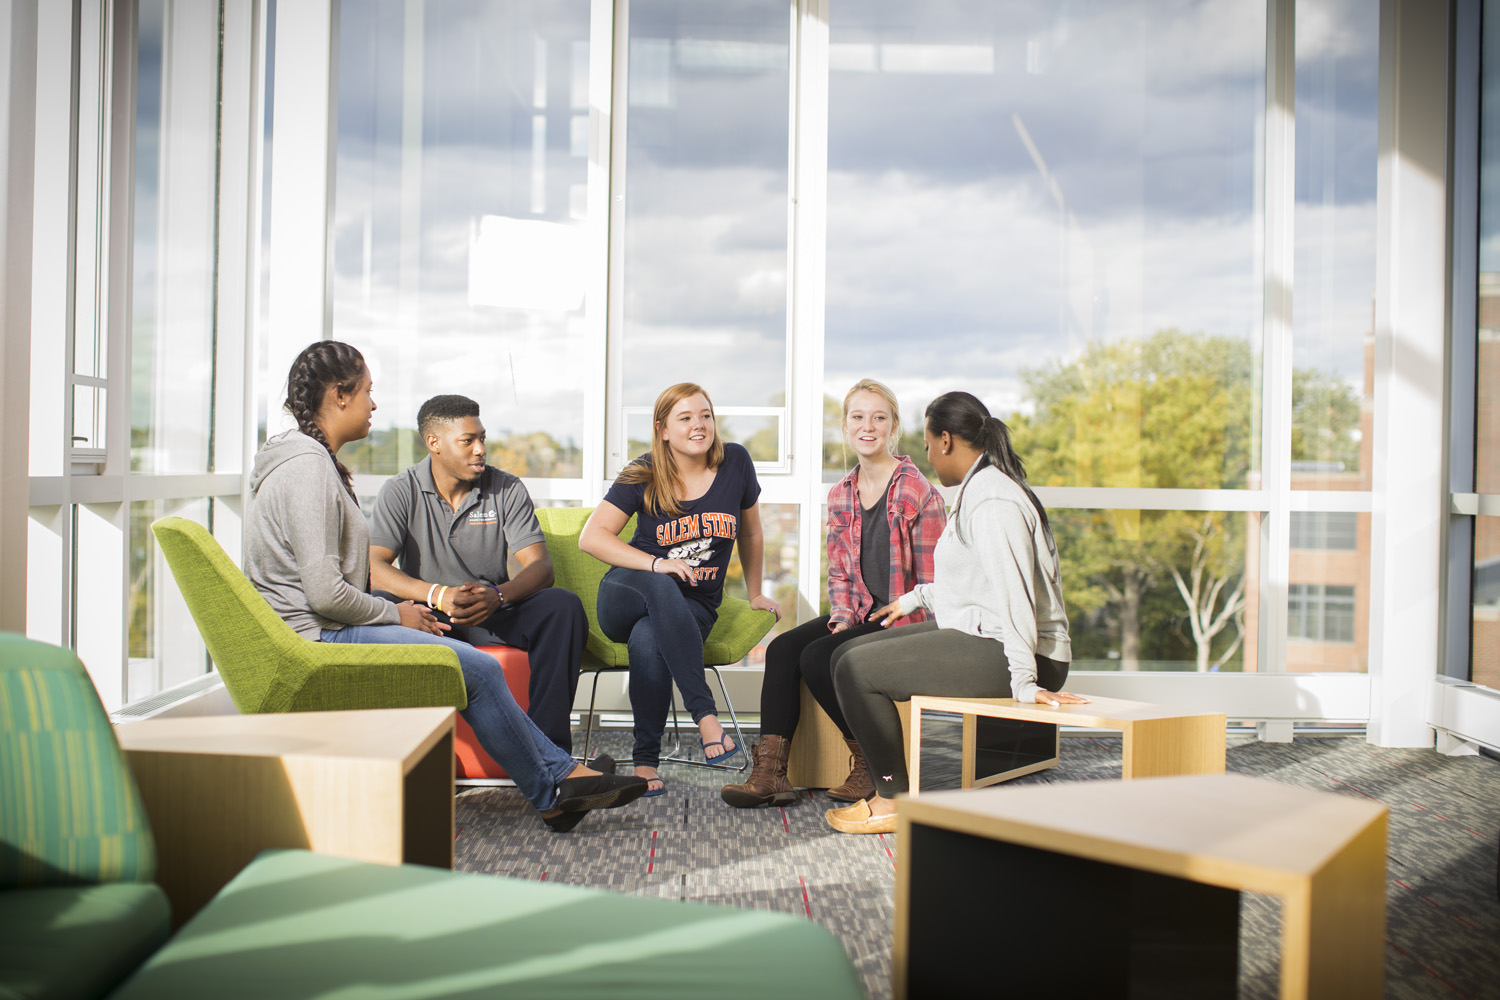 Students together in a common area chatting.